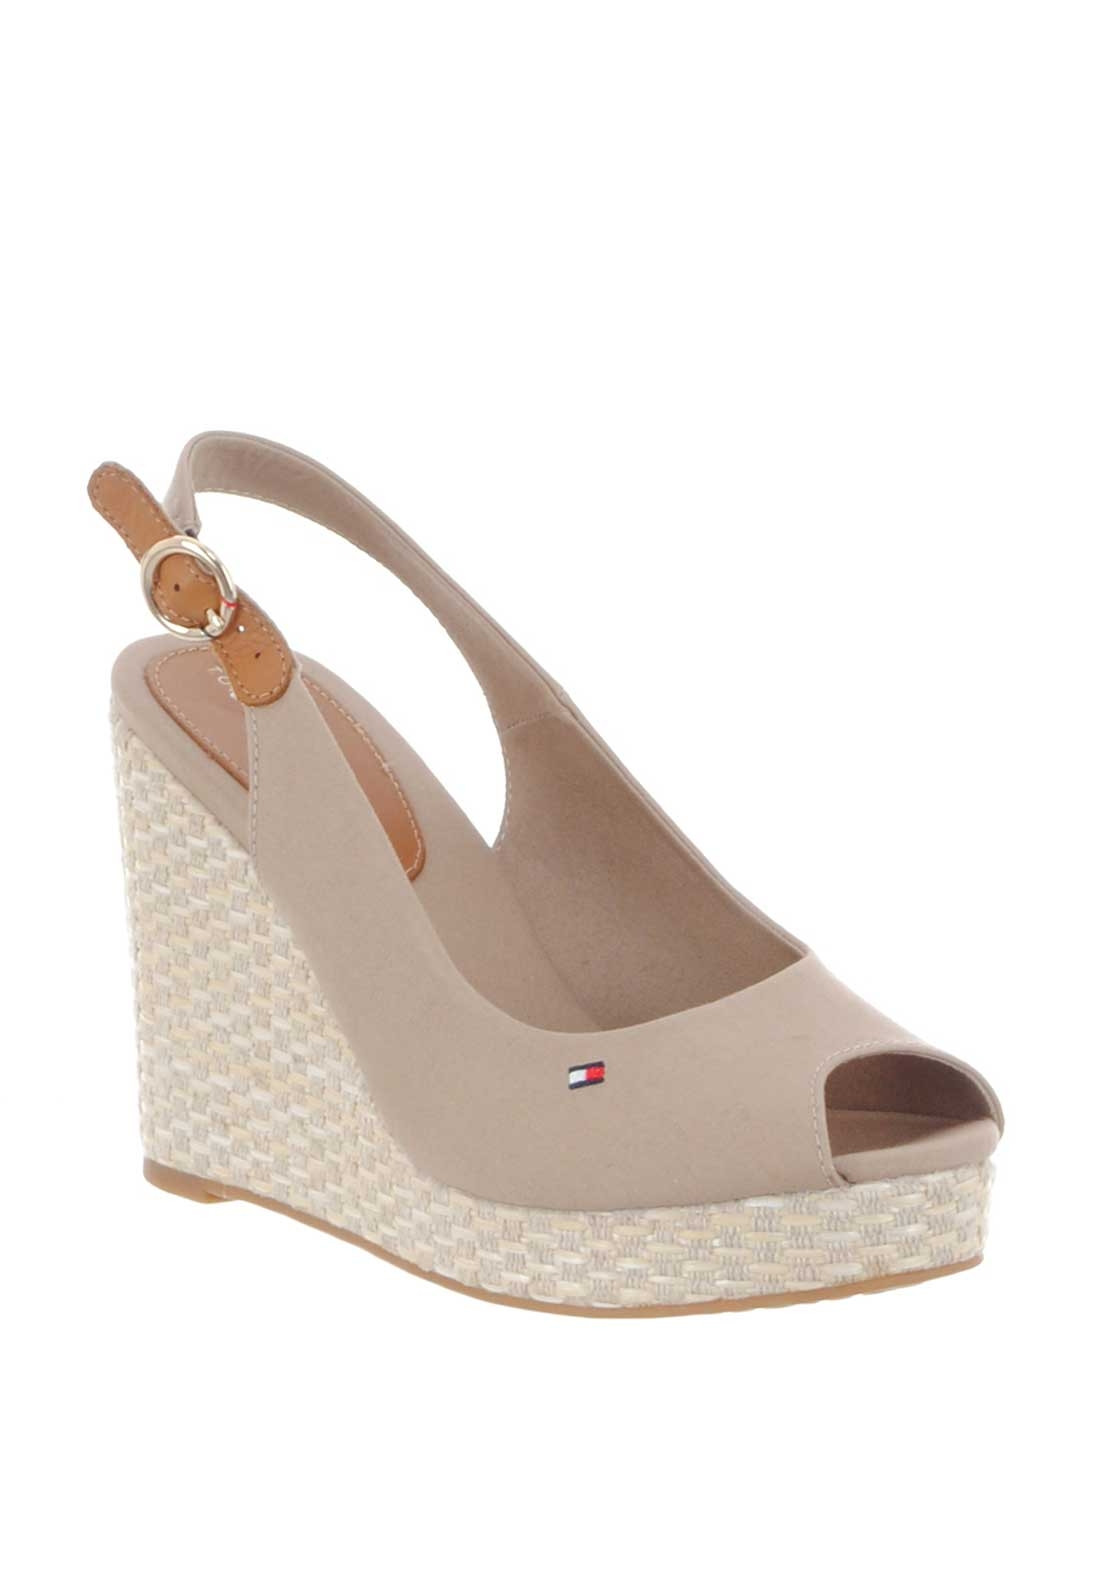 631f82eb4 Tommy Hilfiger Womens Elena Wedged Sandals